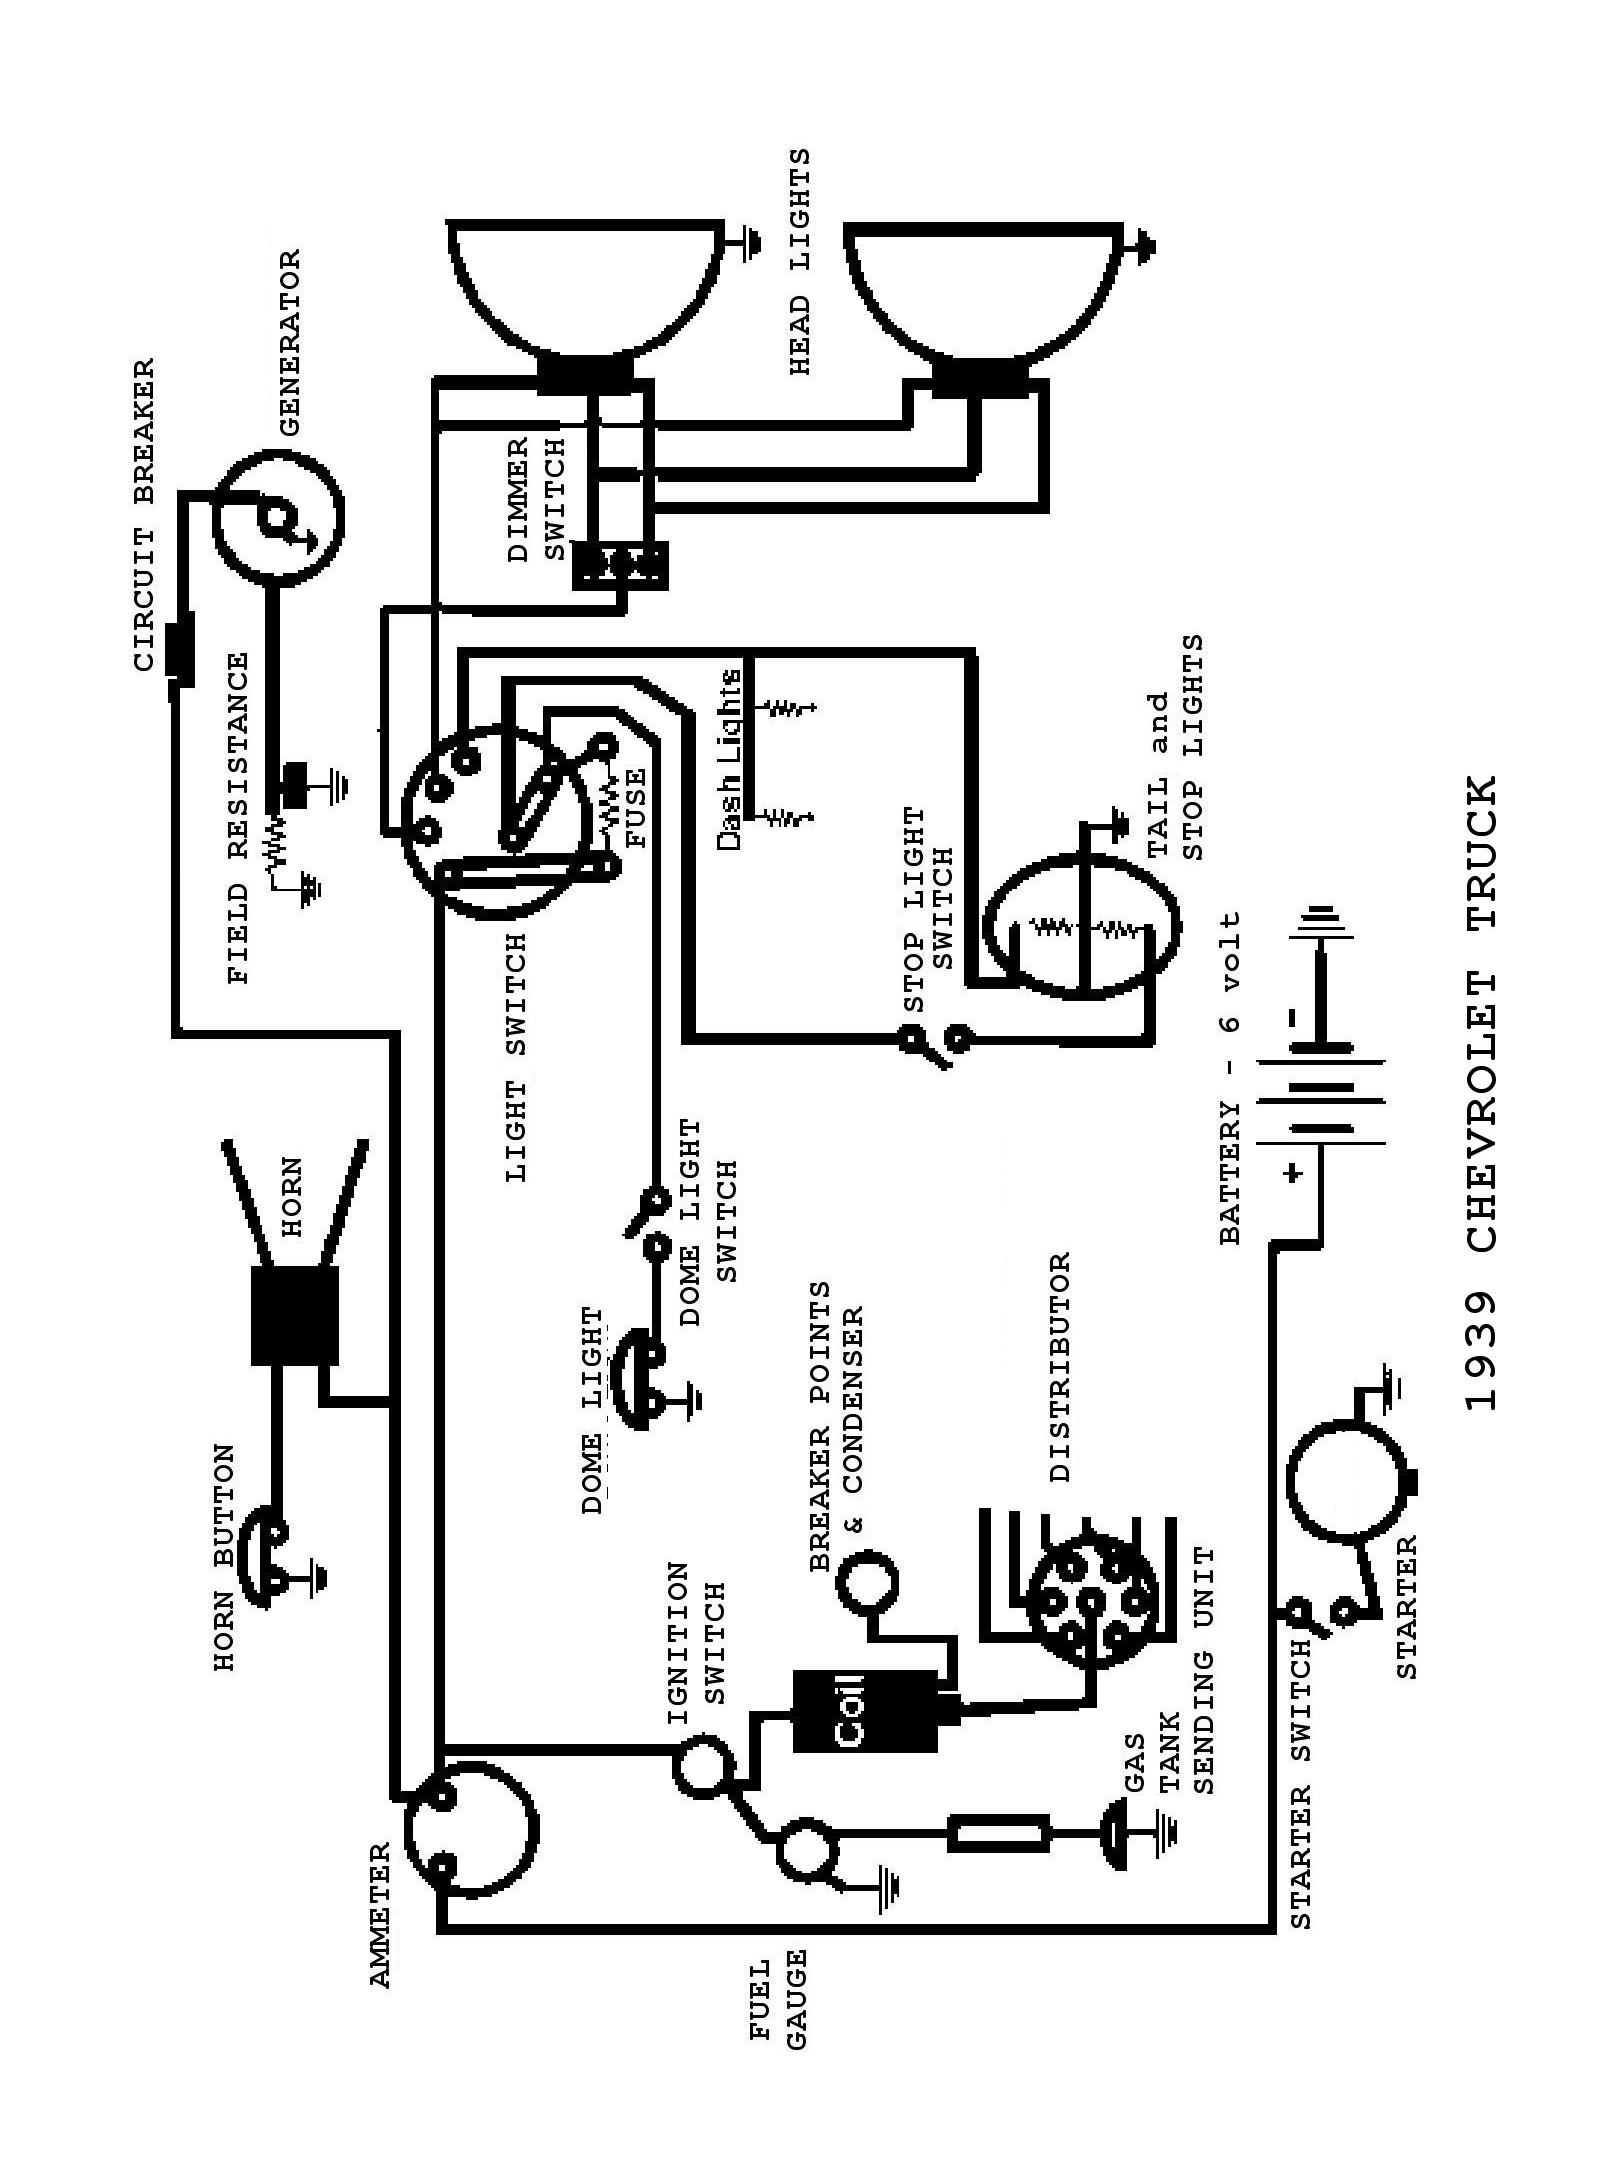 39truck ihc truck wiring diagrams mazda truck wiring diagrams \u2022 free 1979 Corvette Fuse Box Diagram at mr168.co